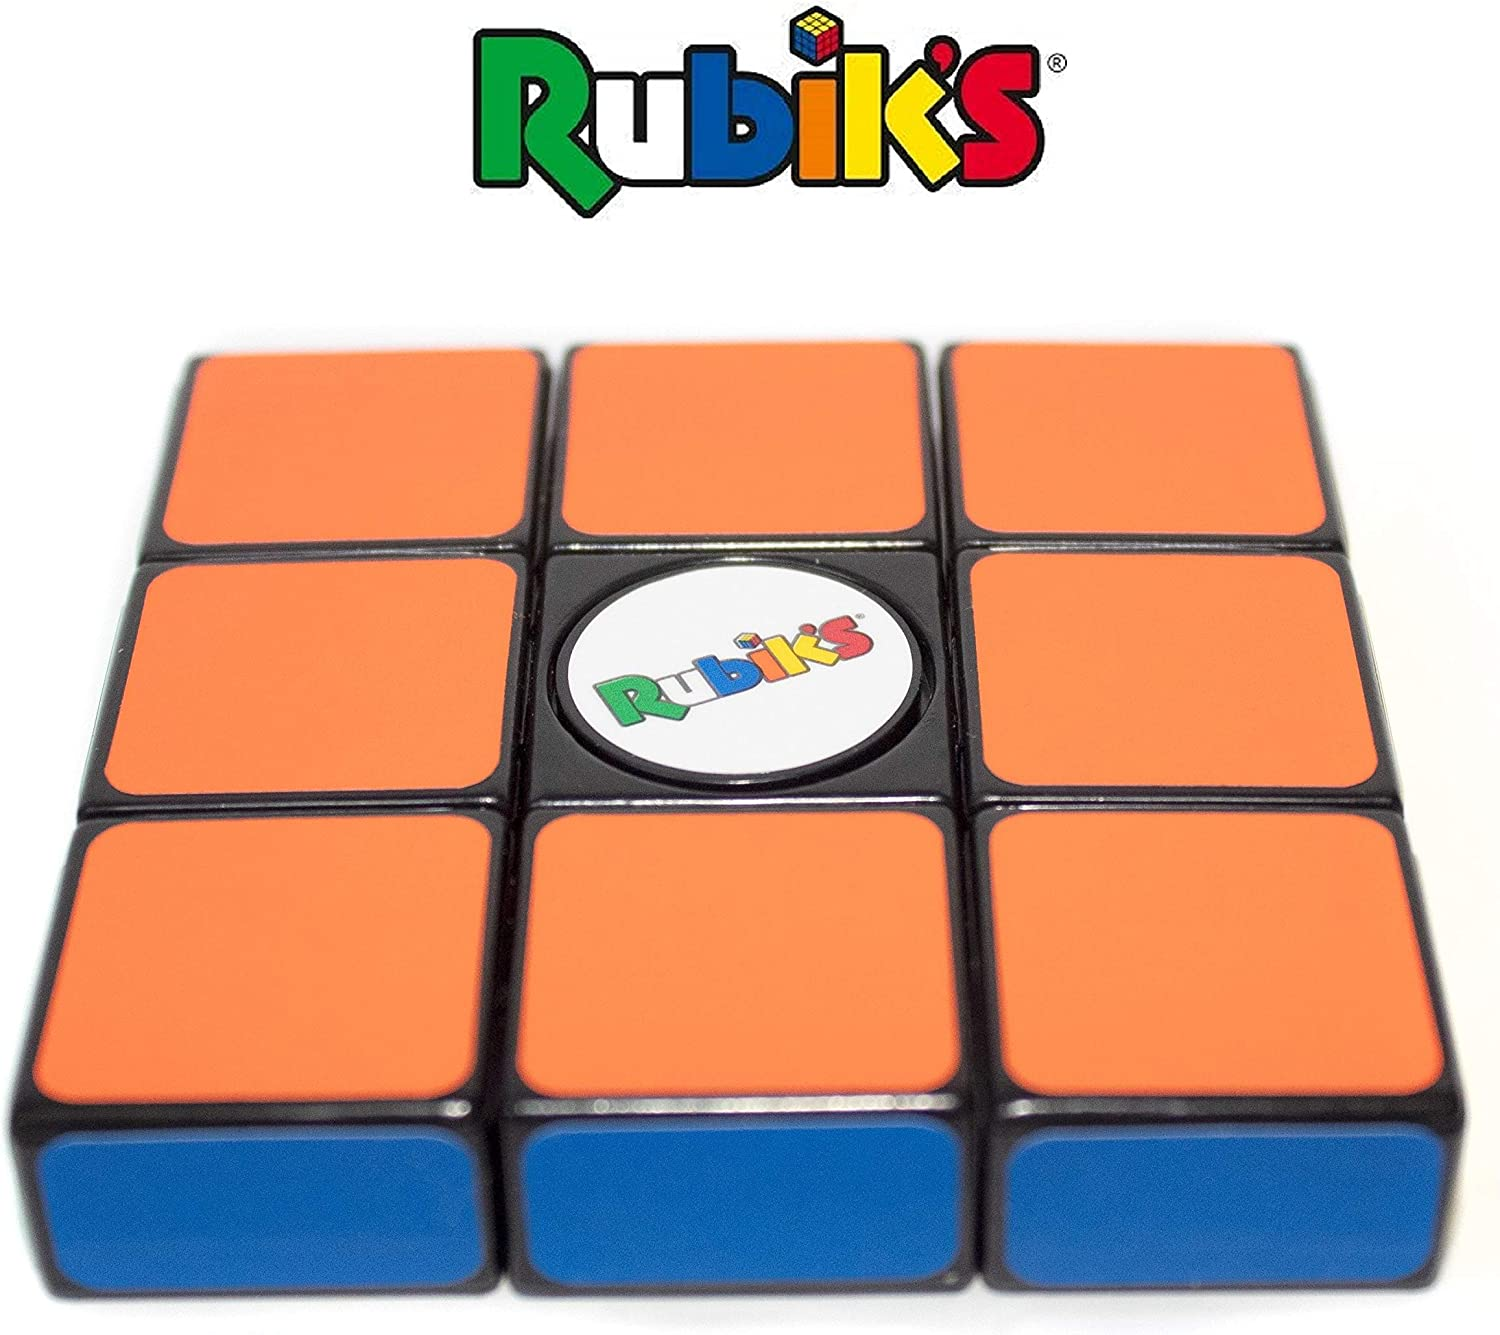 Rubik's Spin Block;Pocket-Size Fidget Spinner Cube,Twist & Turn Into Different Shapes,Fun to Hold,Easy to Spin,Easy to Solve,Great for Adults&+4 Kid,Fidgety Hands & ADHD (Orange)